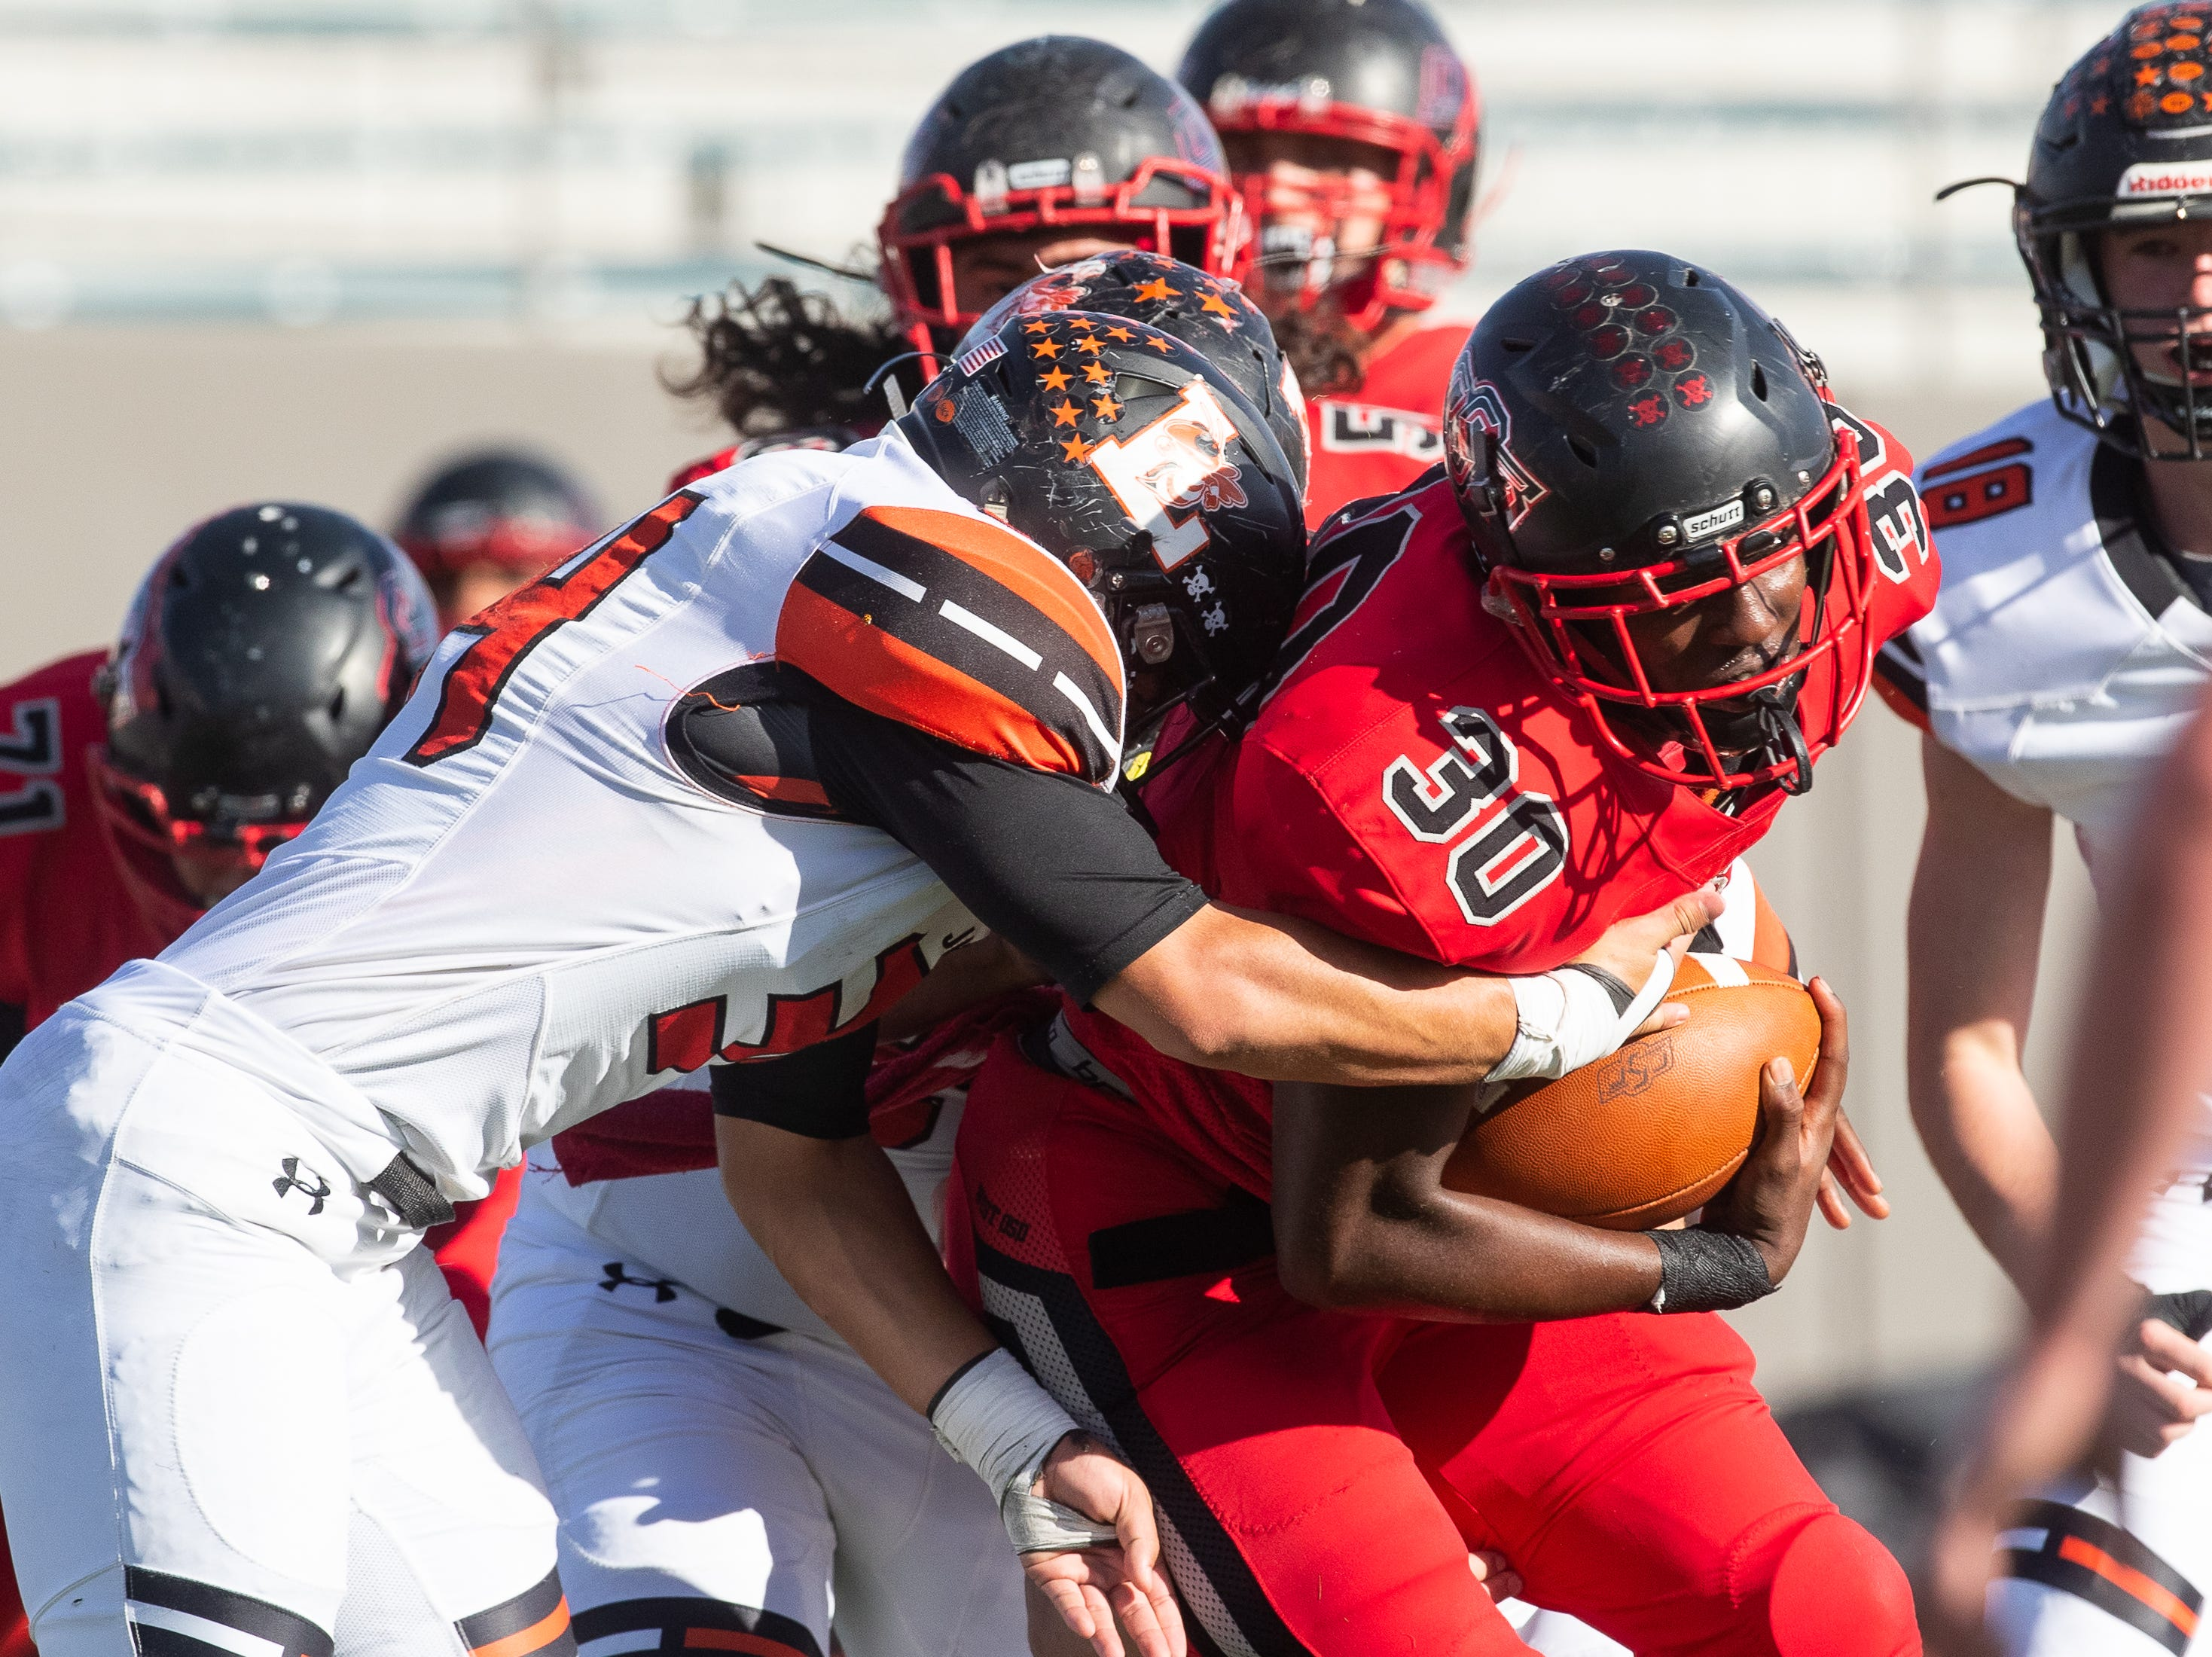 West Oso wins 62-31 over Llano in a Class 4A Division II area round game at Alamo Stadium in San Antonio on Friday, Nov. 23, 2018.